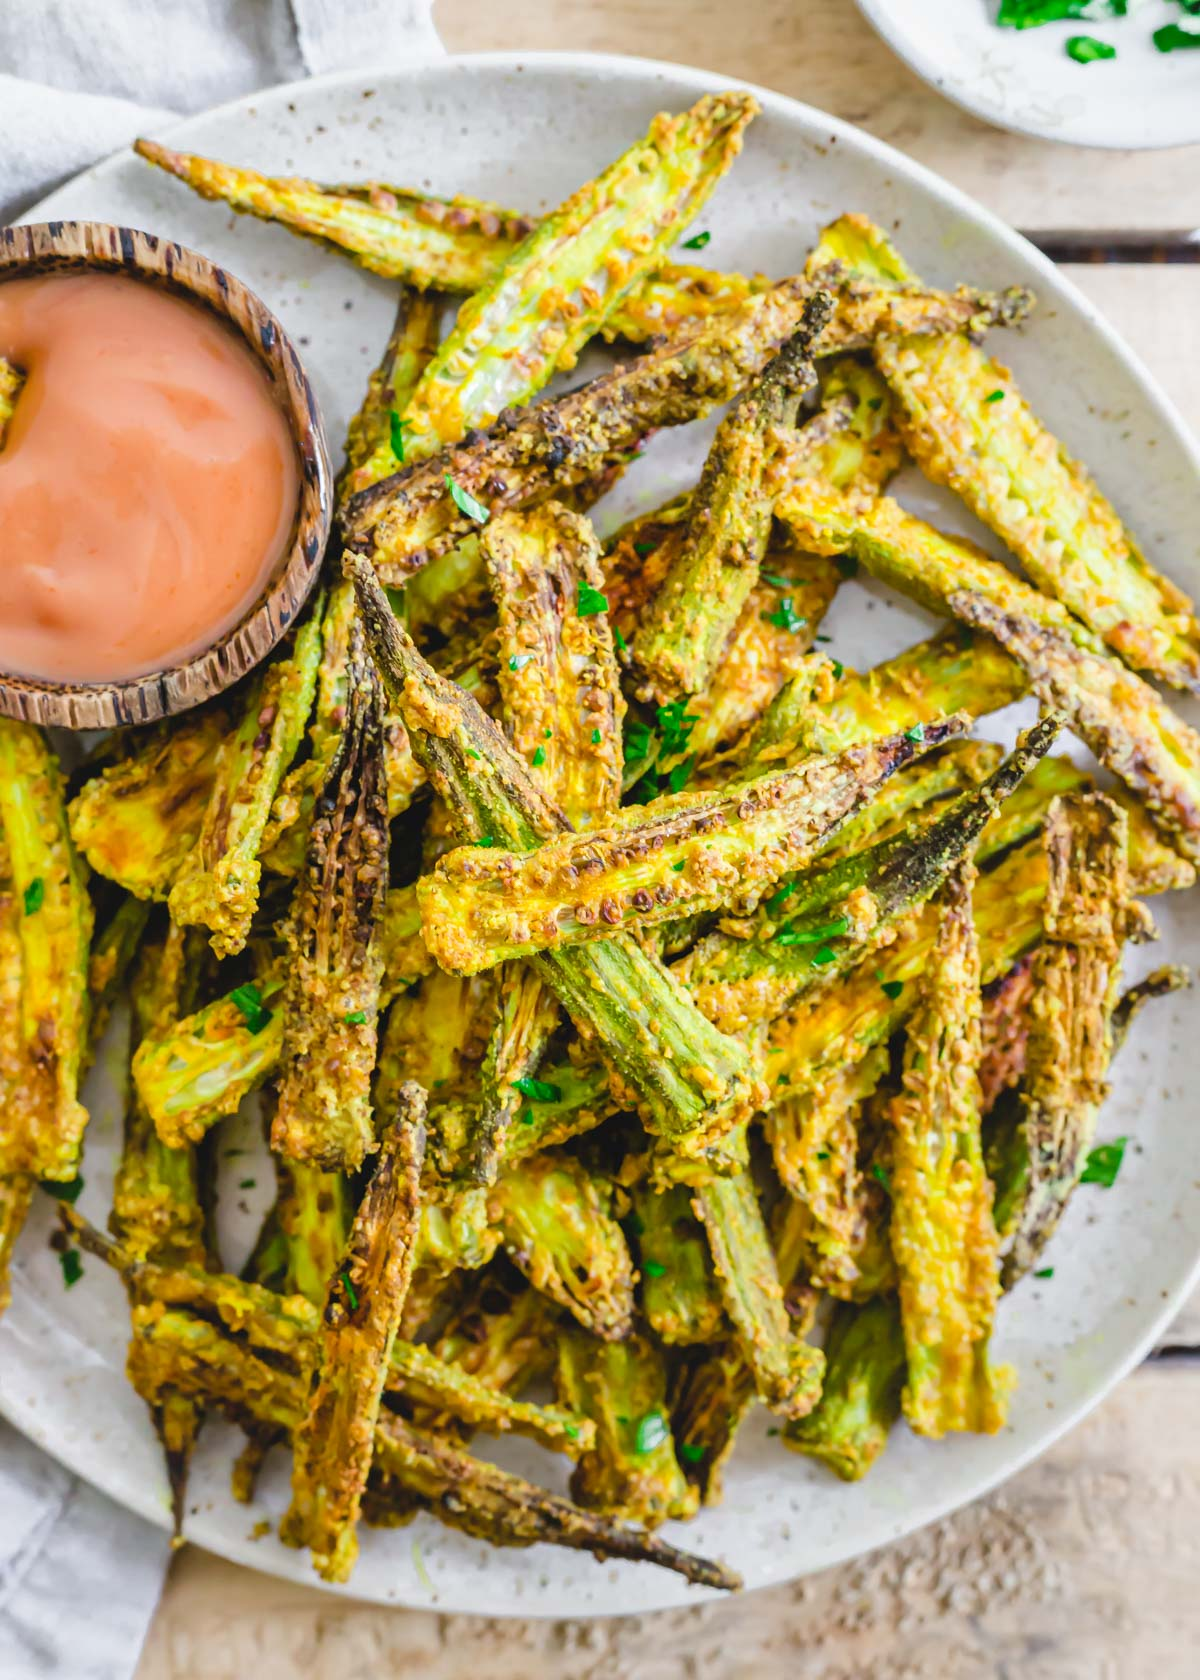 Crispy crunchy air fryer okra on a plate with dipping sauce.